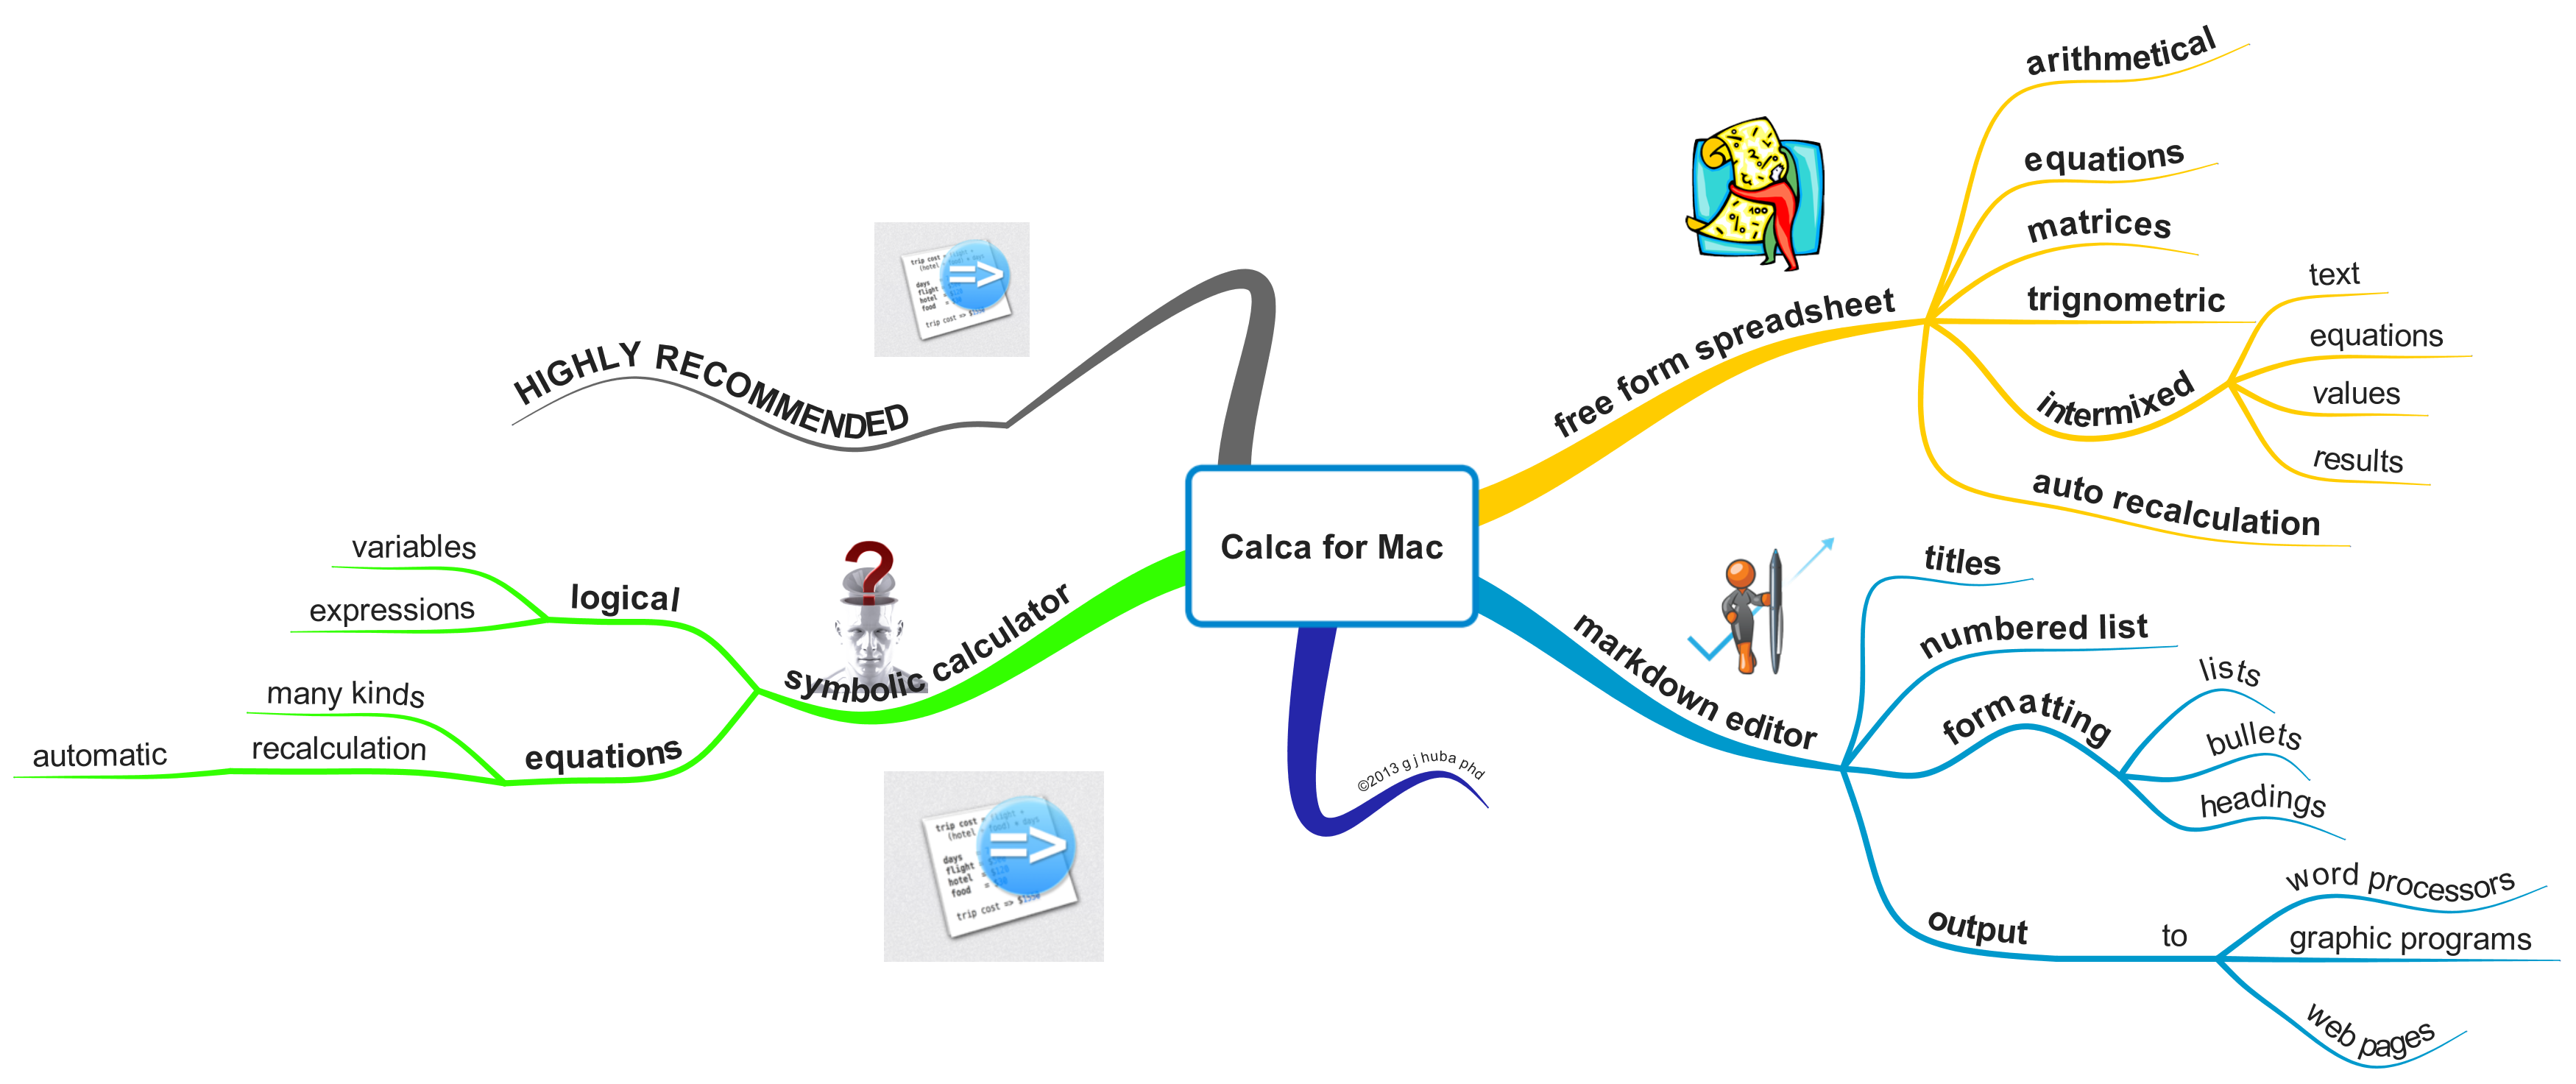 Calca – A Must Have Free-form #Spreadsheet (Symbolic ... on mind map me, mind map template blank, mind animation, mind mapper, mind business, mind tool, mind health, mind map creation, mind map example, mind map design, mind map elements, mind travel, mind games, mind programming, mind map powerpoint template, mind map exercise, mind exploration, mind energy, mind map software, mind maps for books,